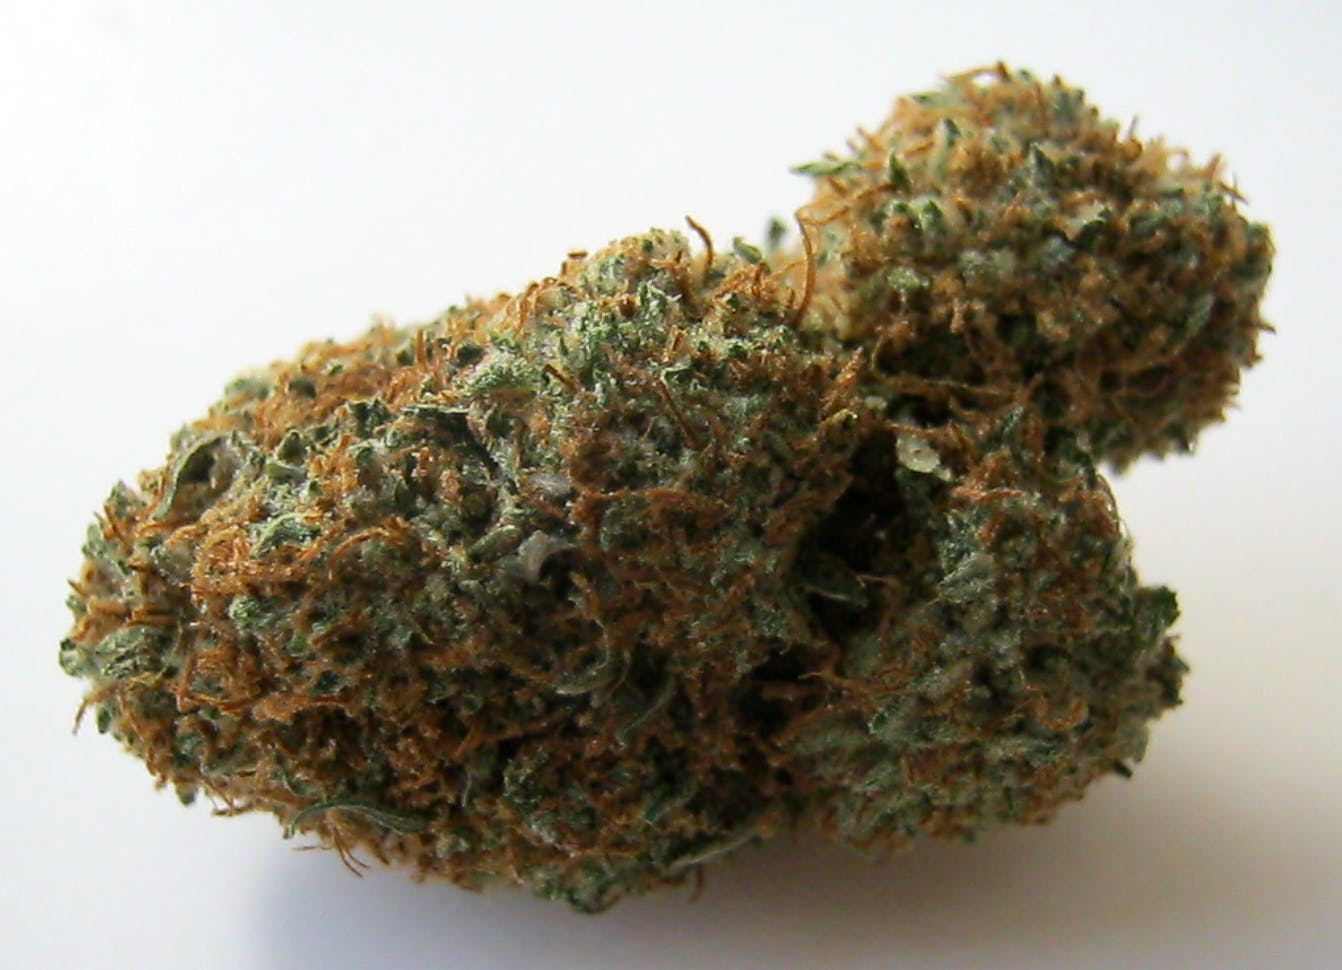 marijuana-dispensaries-thc-35-cap-open-to-2am-in-los-angeles-bubba-og